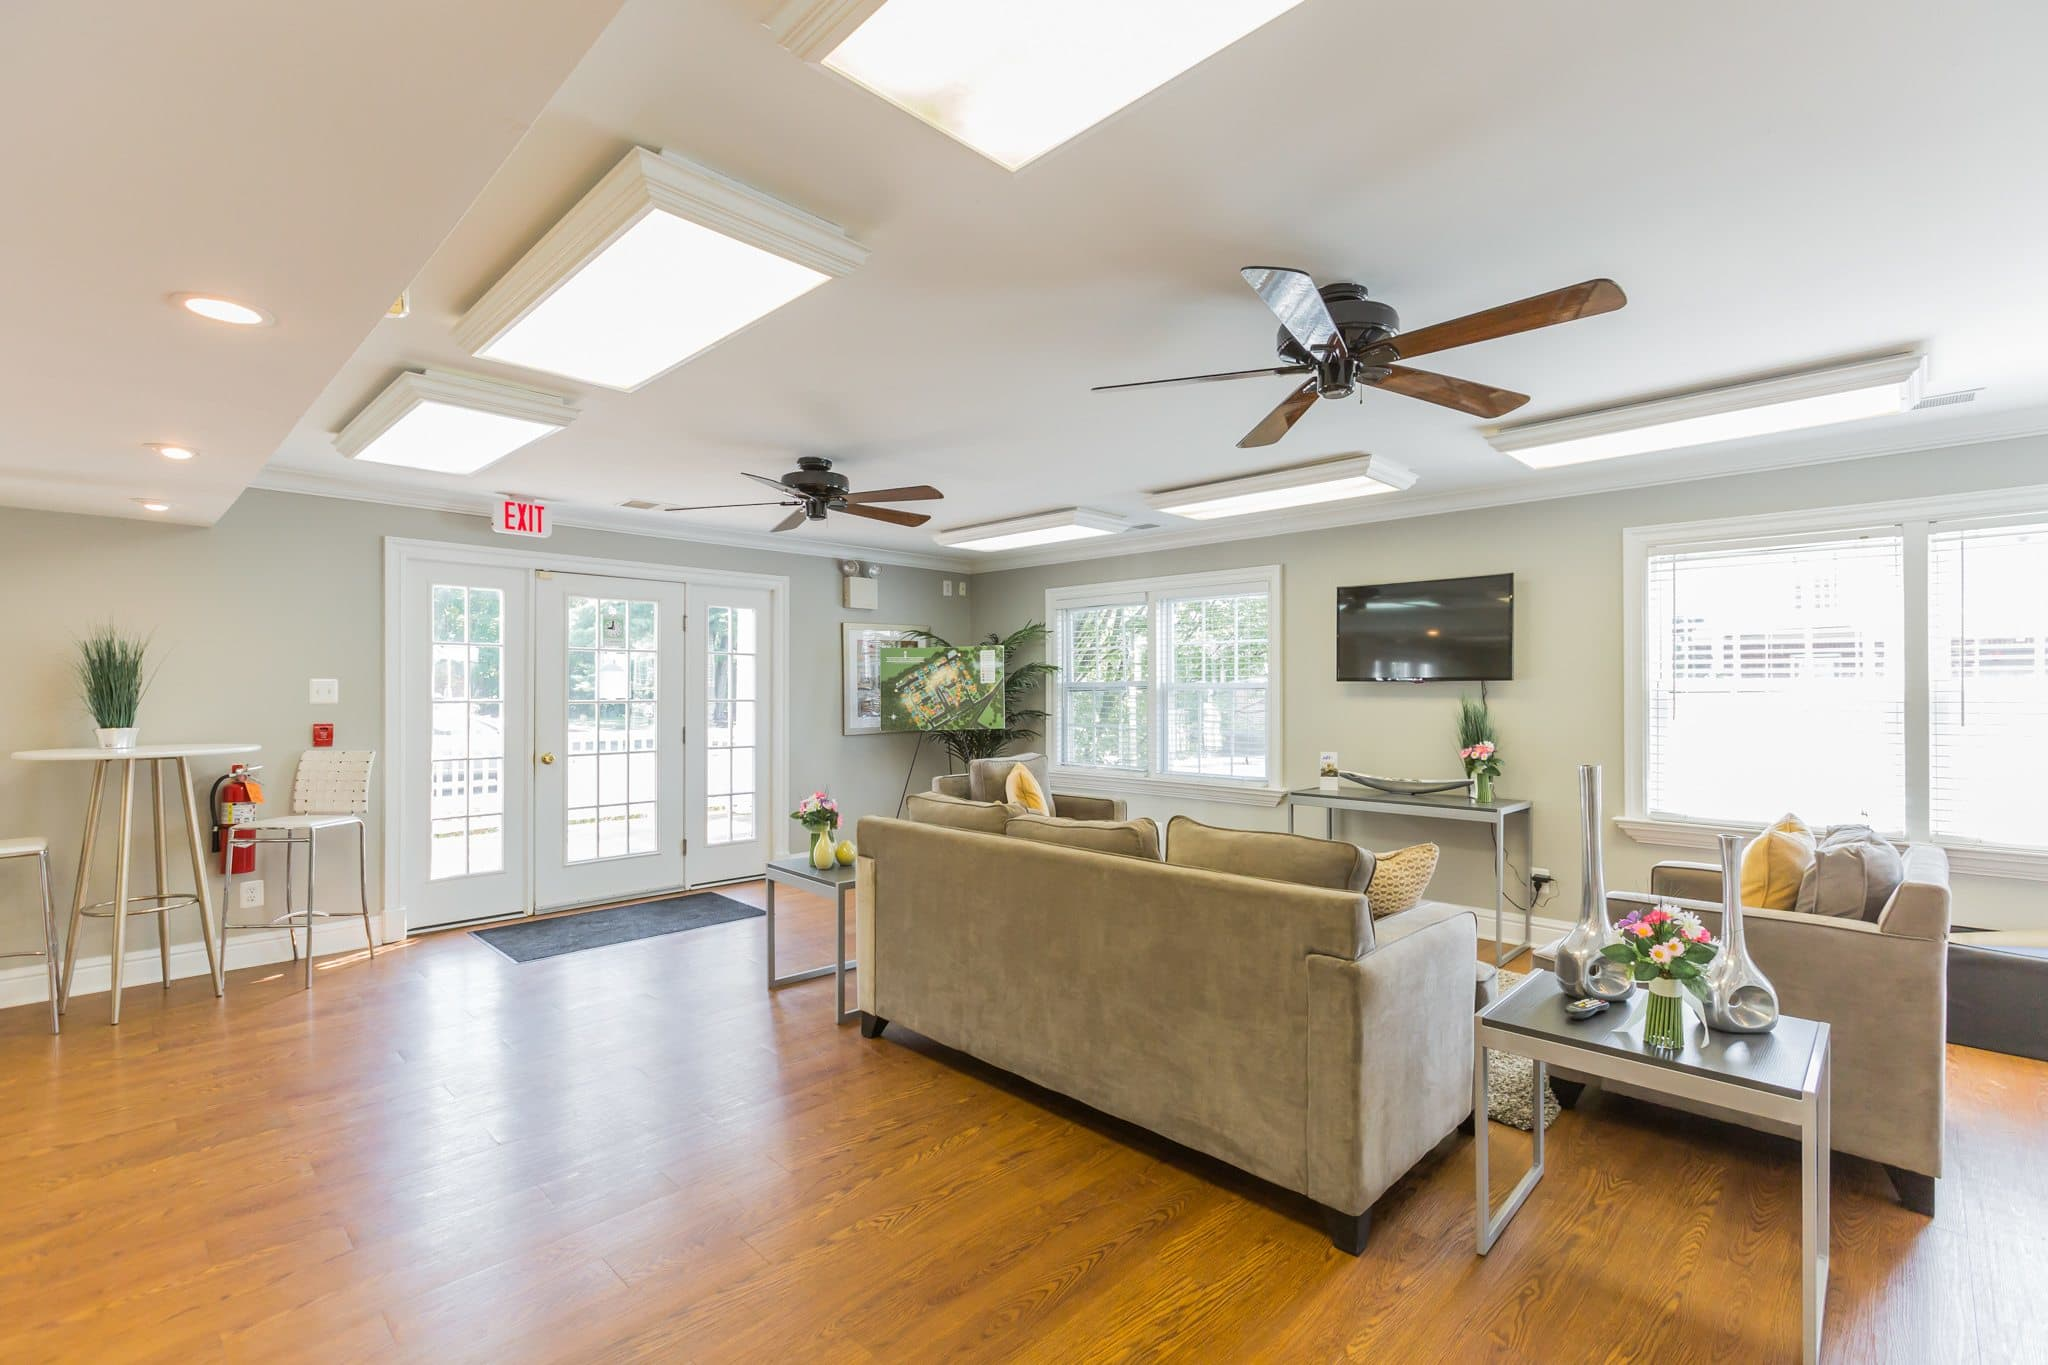 Spacious Living Space at Village Square Apartments in Mount Holly, NJ